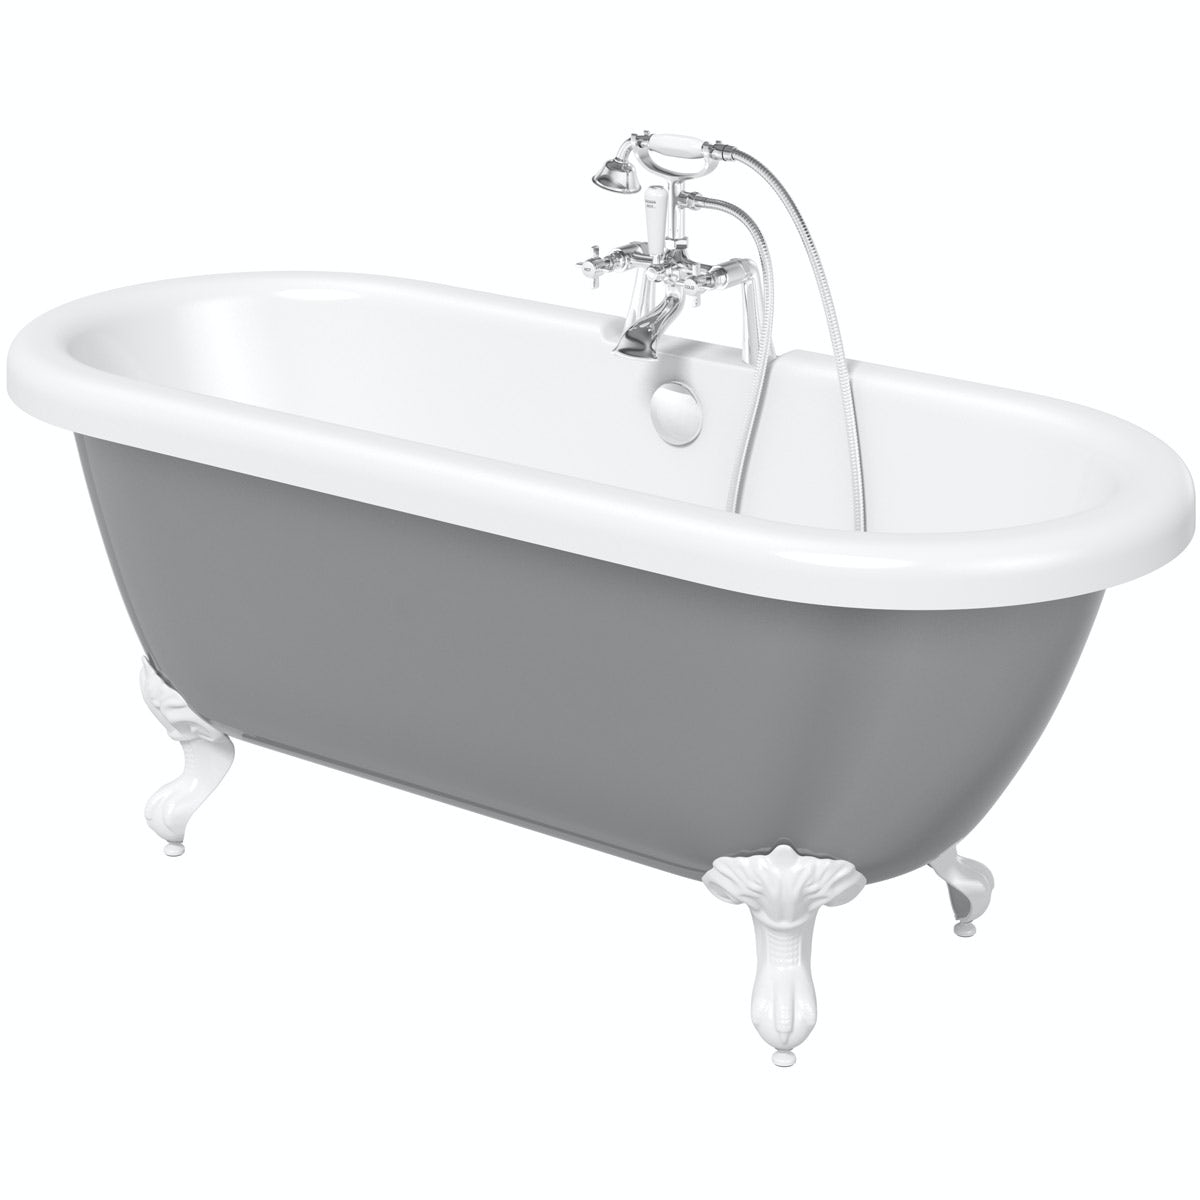 The Bath Co. Dulwich grey roll top bath with white ball and claw feet 1500 x 720